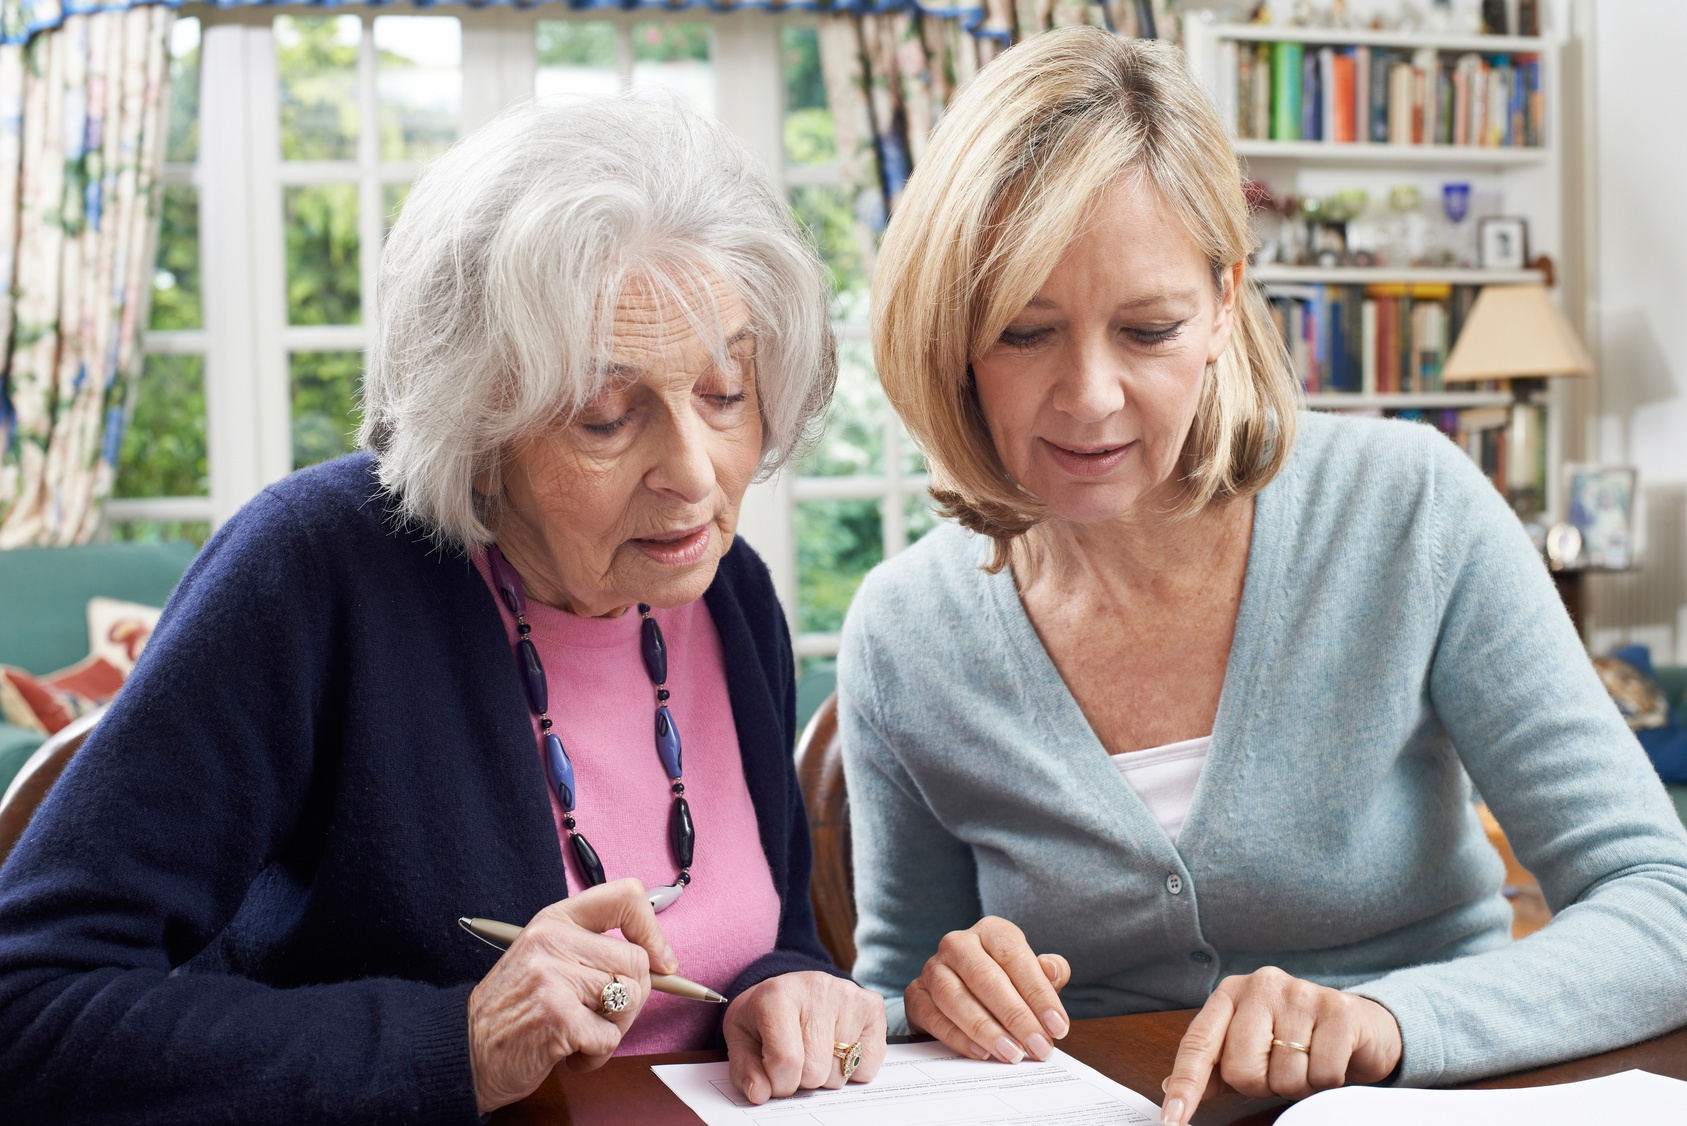 Here's What You Need to Know About Paying for Your Parent's Memory Care